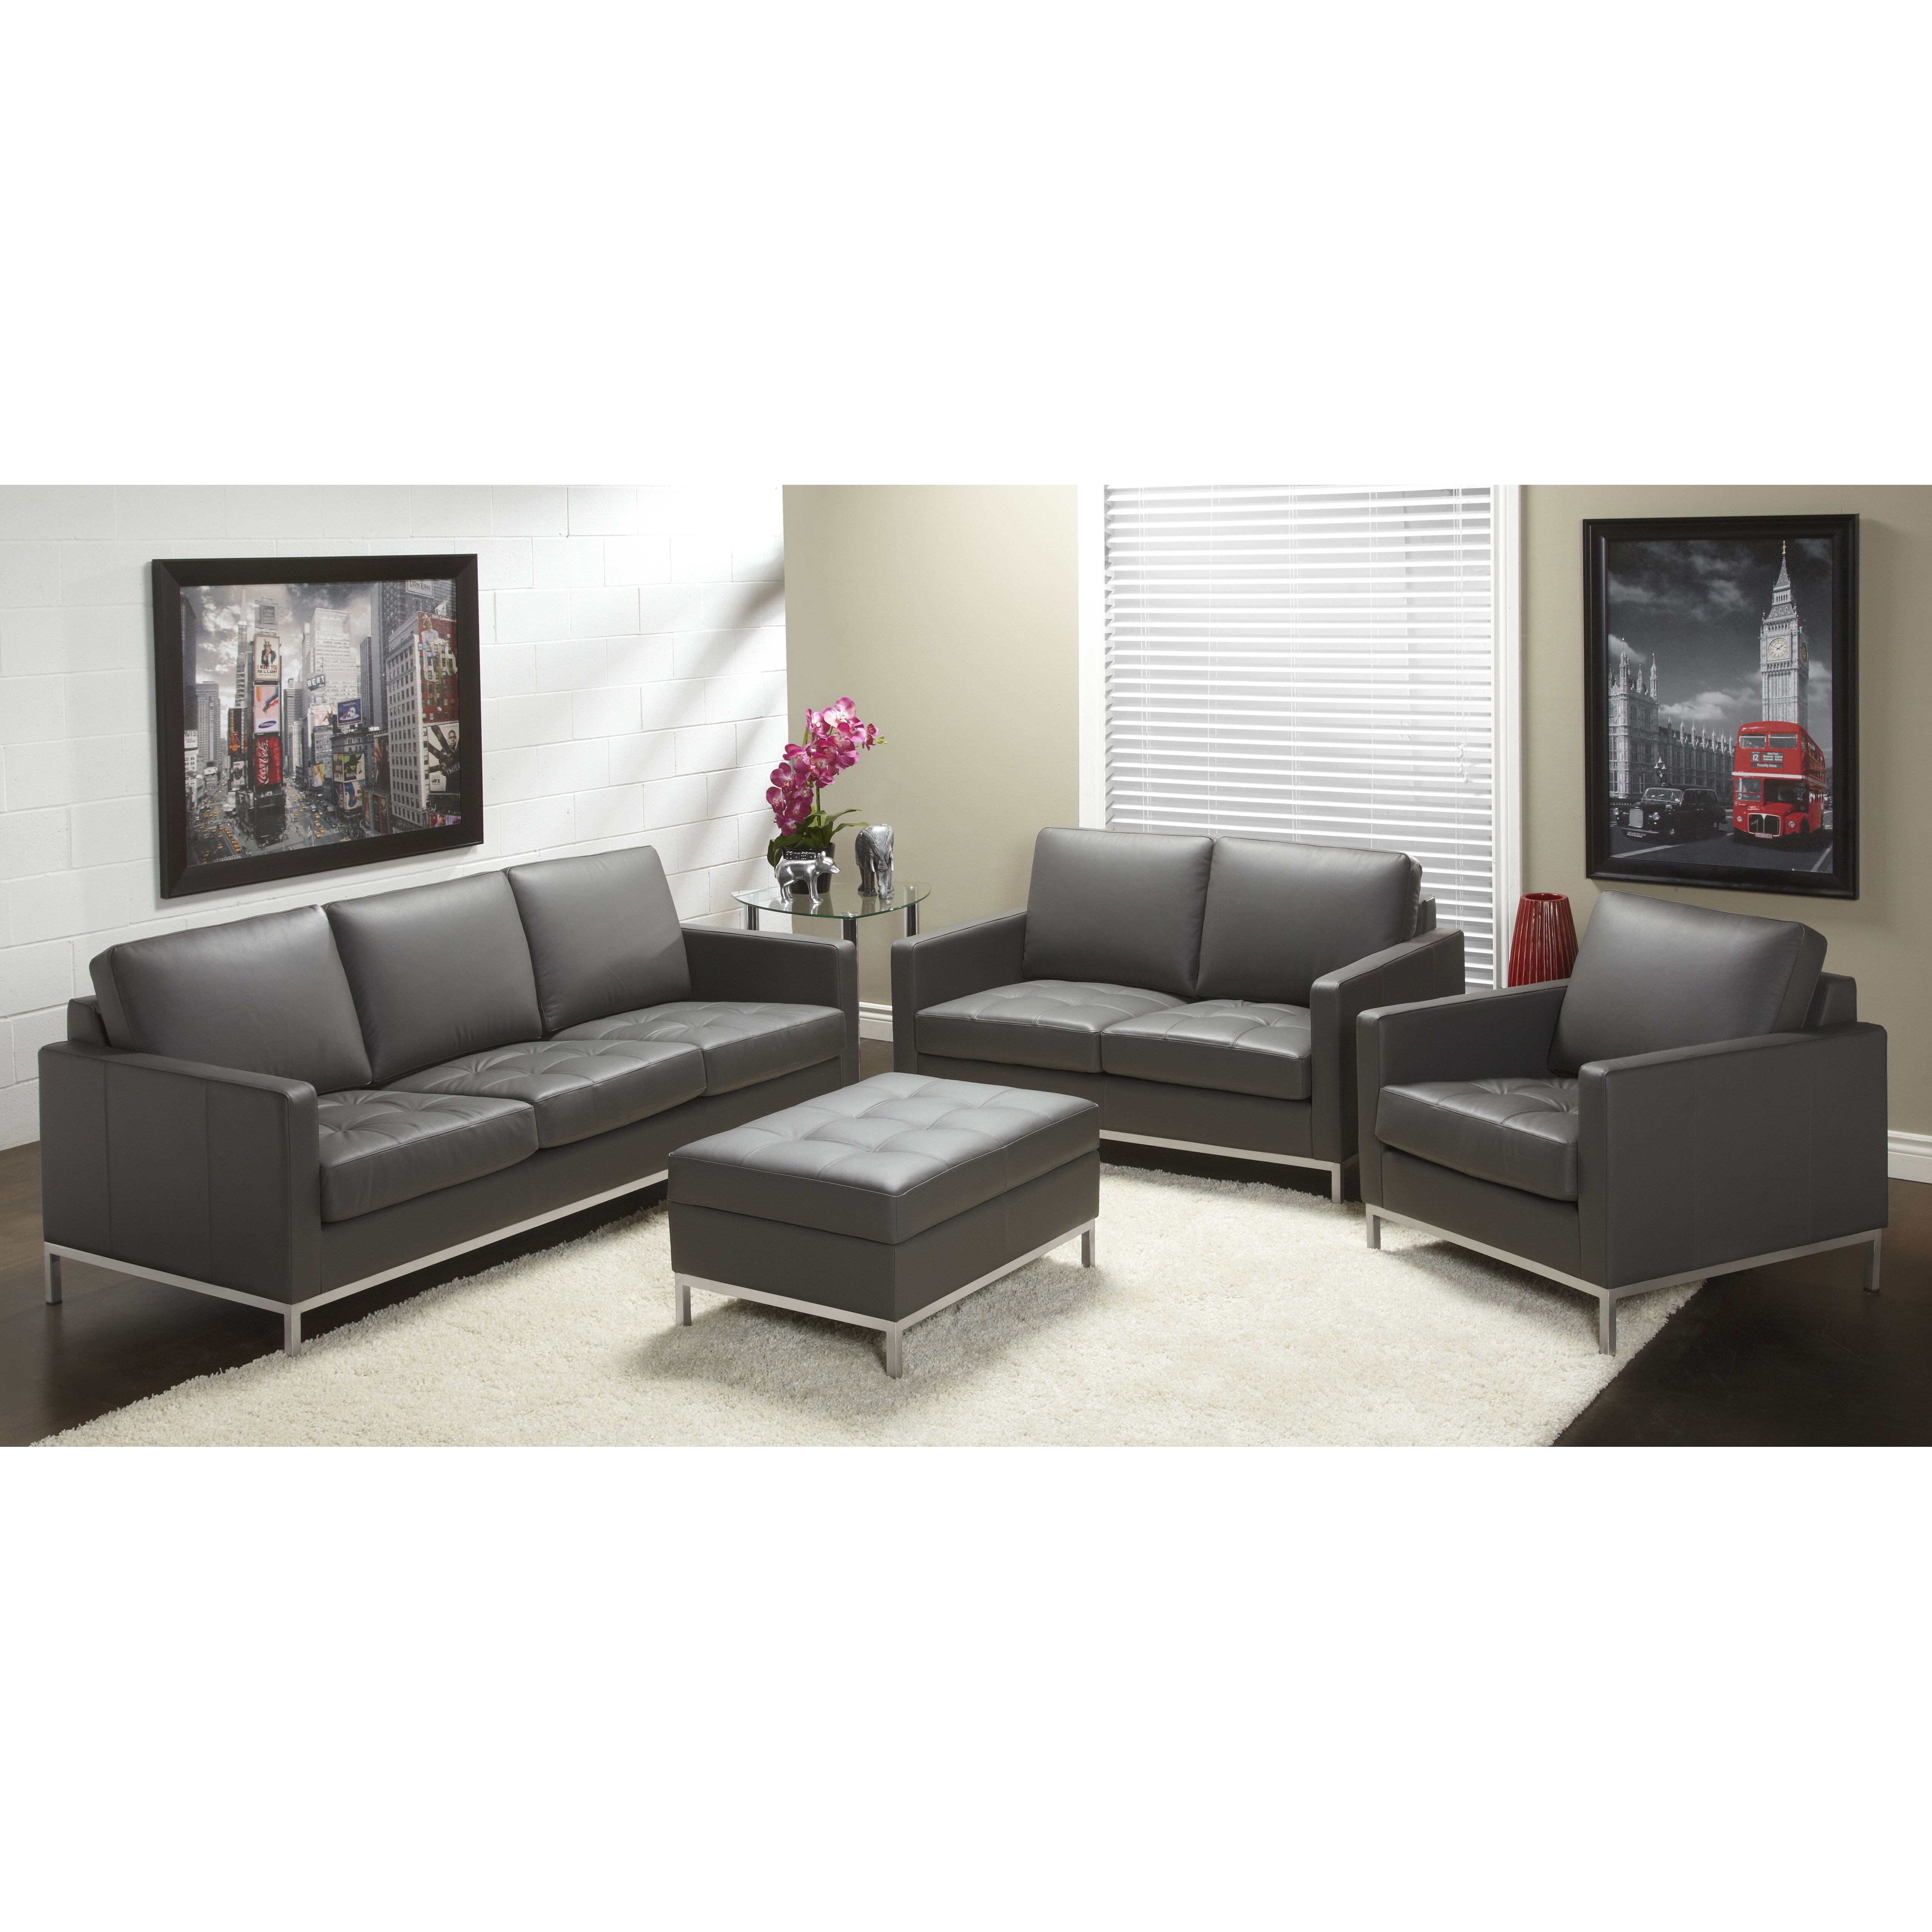 Lind Furniture 244 Series Top Grain Leather Living Room